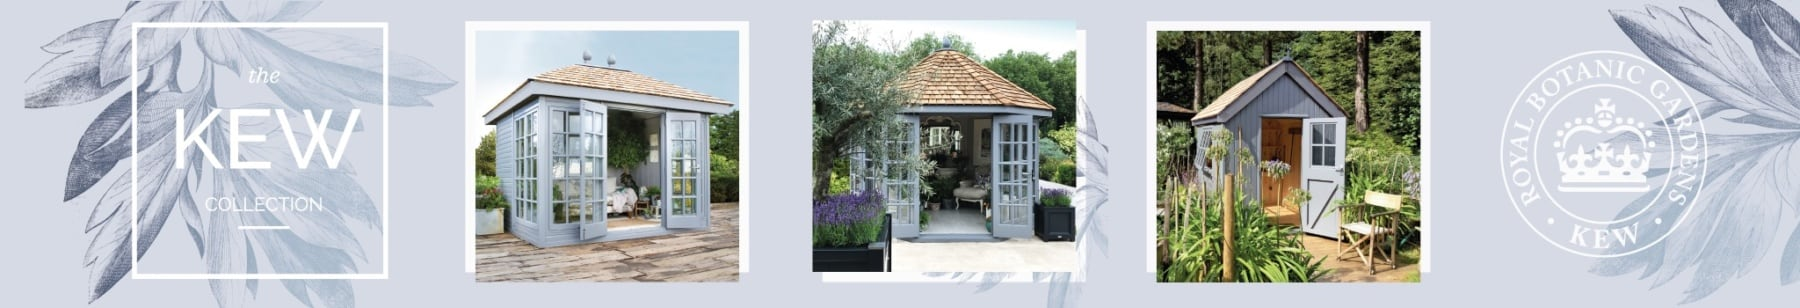 The Kew Collection exclusive to Malvern Garden Buildings